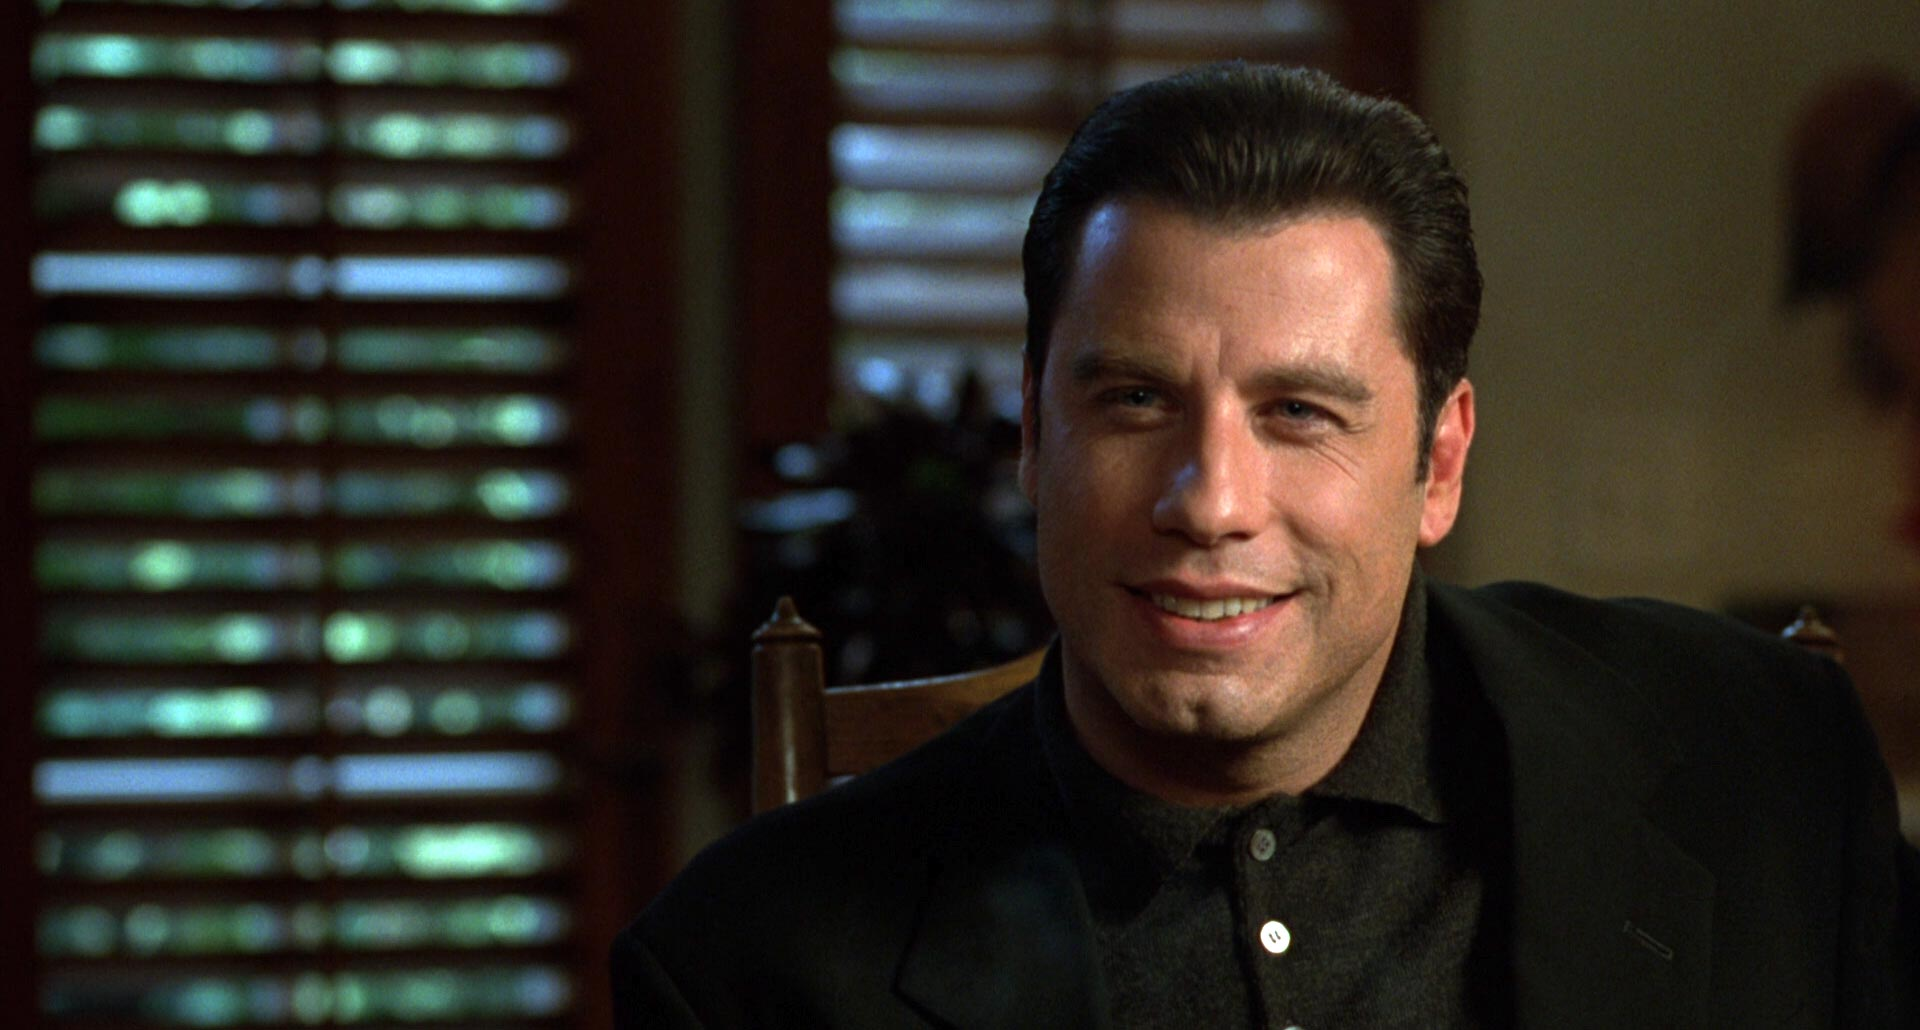 John Travolta Accused Of Shocking Acts Of Sexual Abuse 669a846c 6cd6 4d6d b200 ebea392b093e get shorty travolta